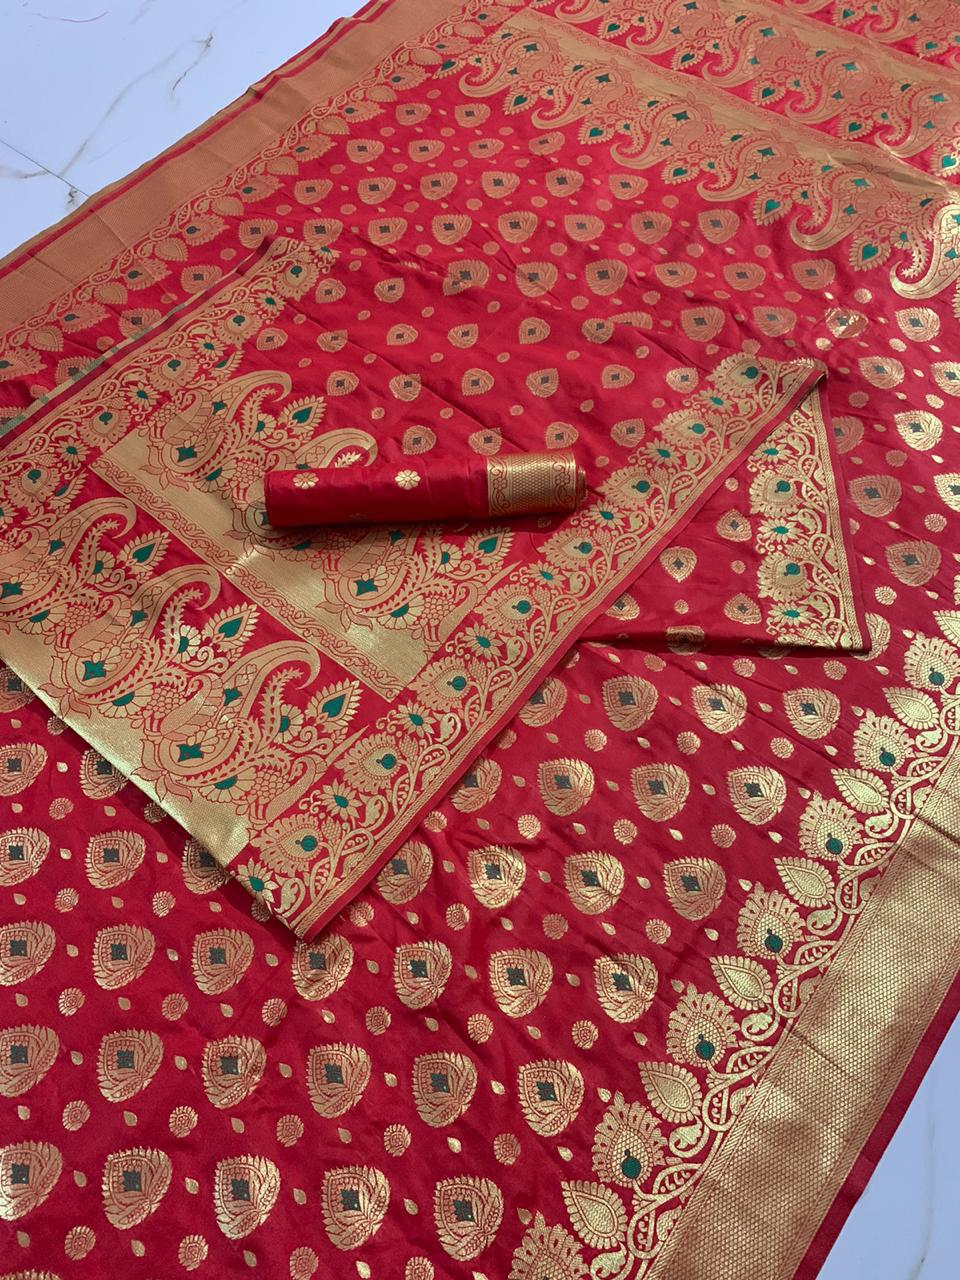 Burgundy Color Soft Pure Banarasi Handloom Silk Mina Zari Weaving Brocade Pallu Saree Blouse